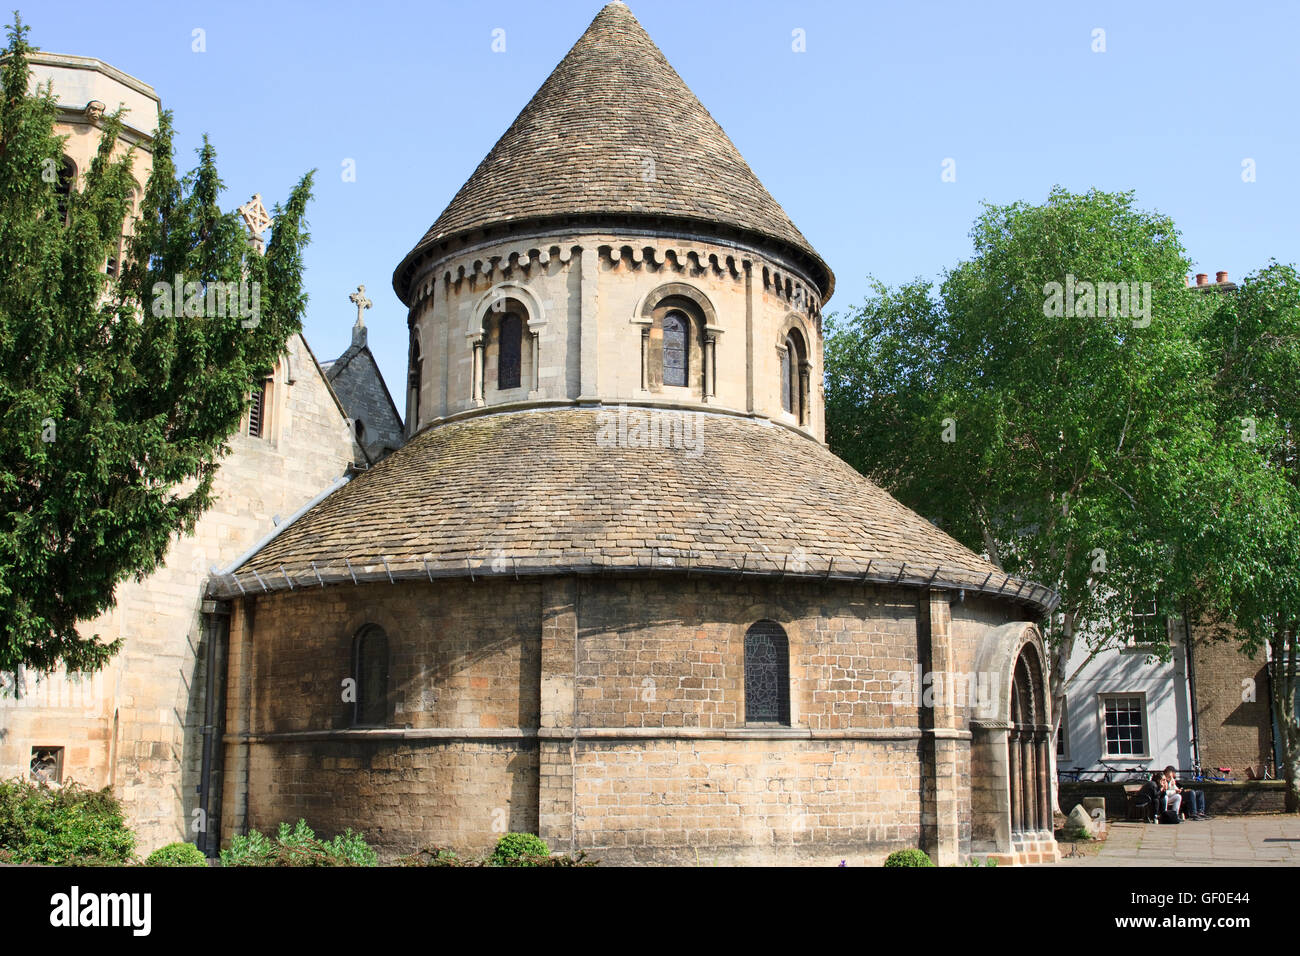 The Church of the Holy Sepulchre, Cambridge, England. - Stock Image